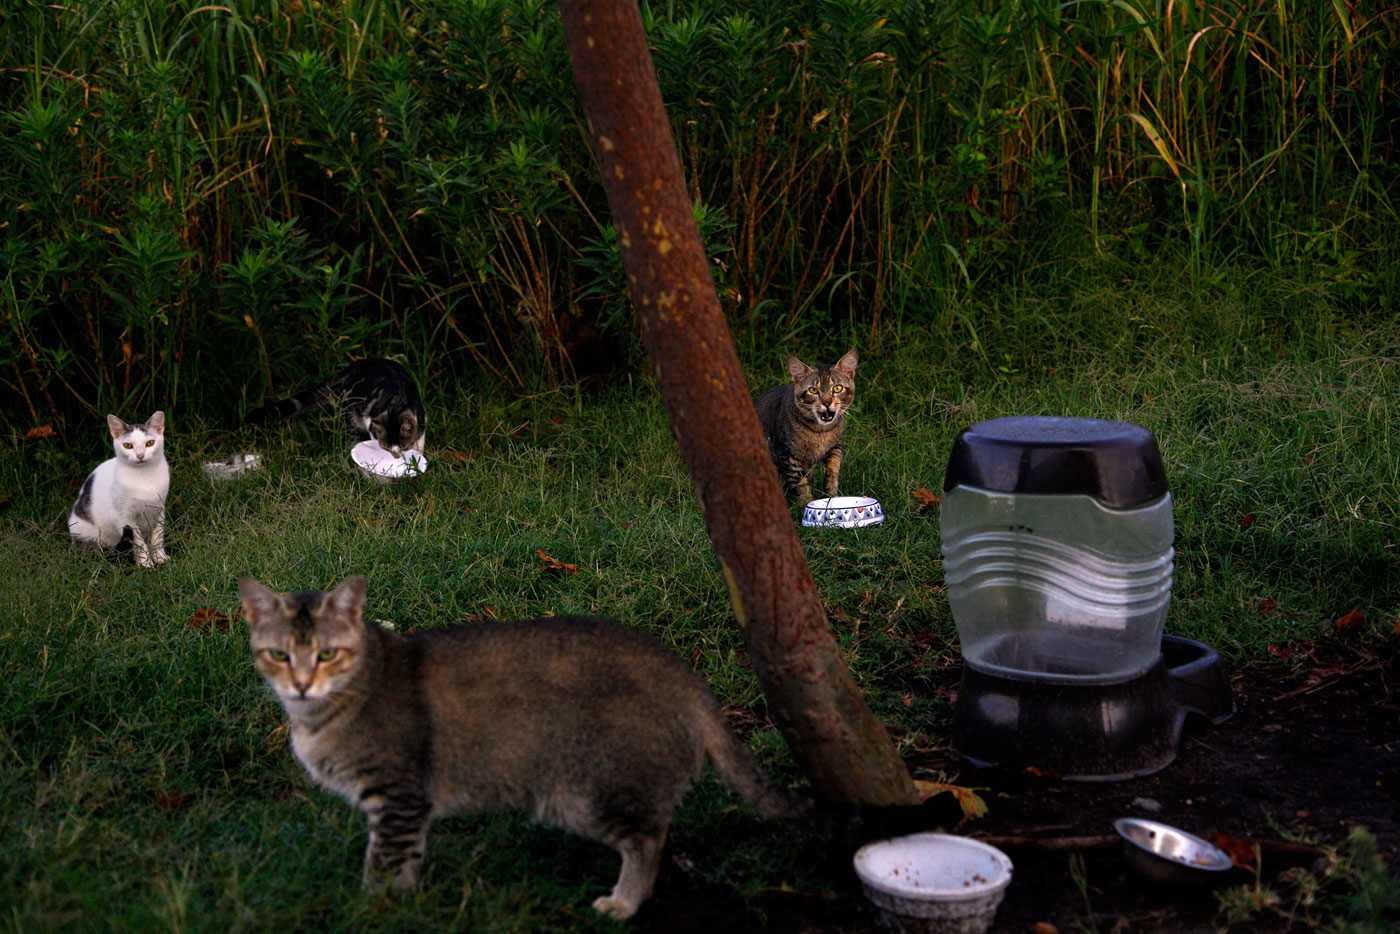 About a dozen feral cats live outside of McAllister Towing in Norfolk, Va., on Friday, July 13, 2012. Employee Michelle Edwards feeds them and recently had them neutered or spayed through a trap and release program.